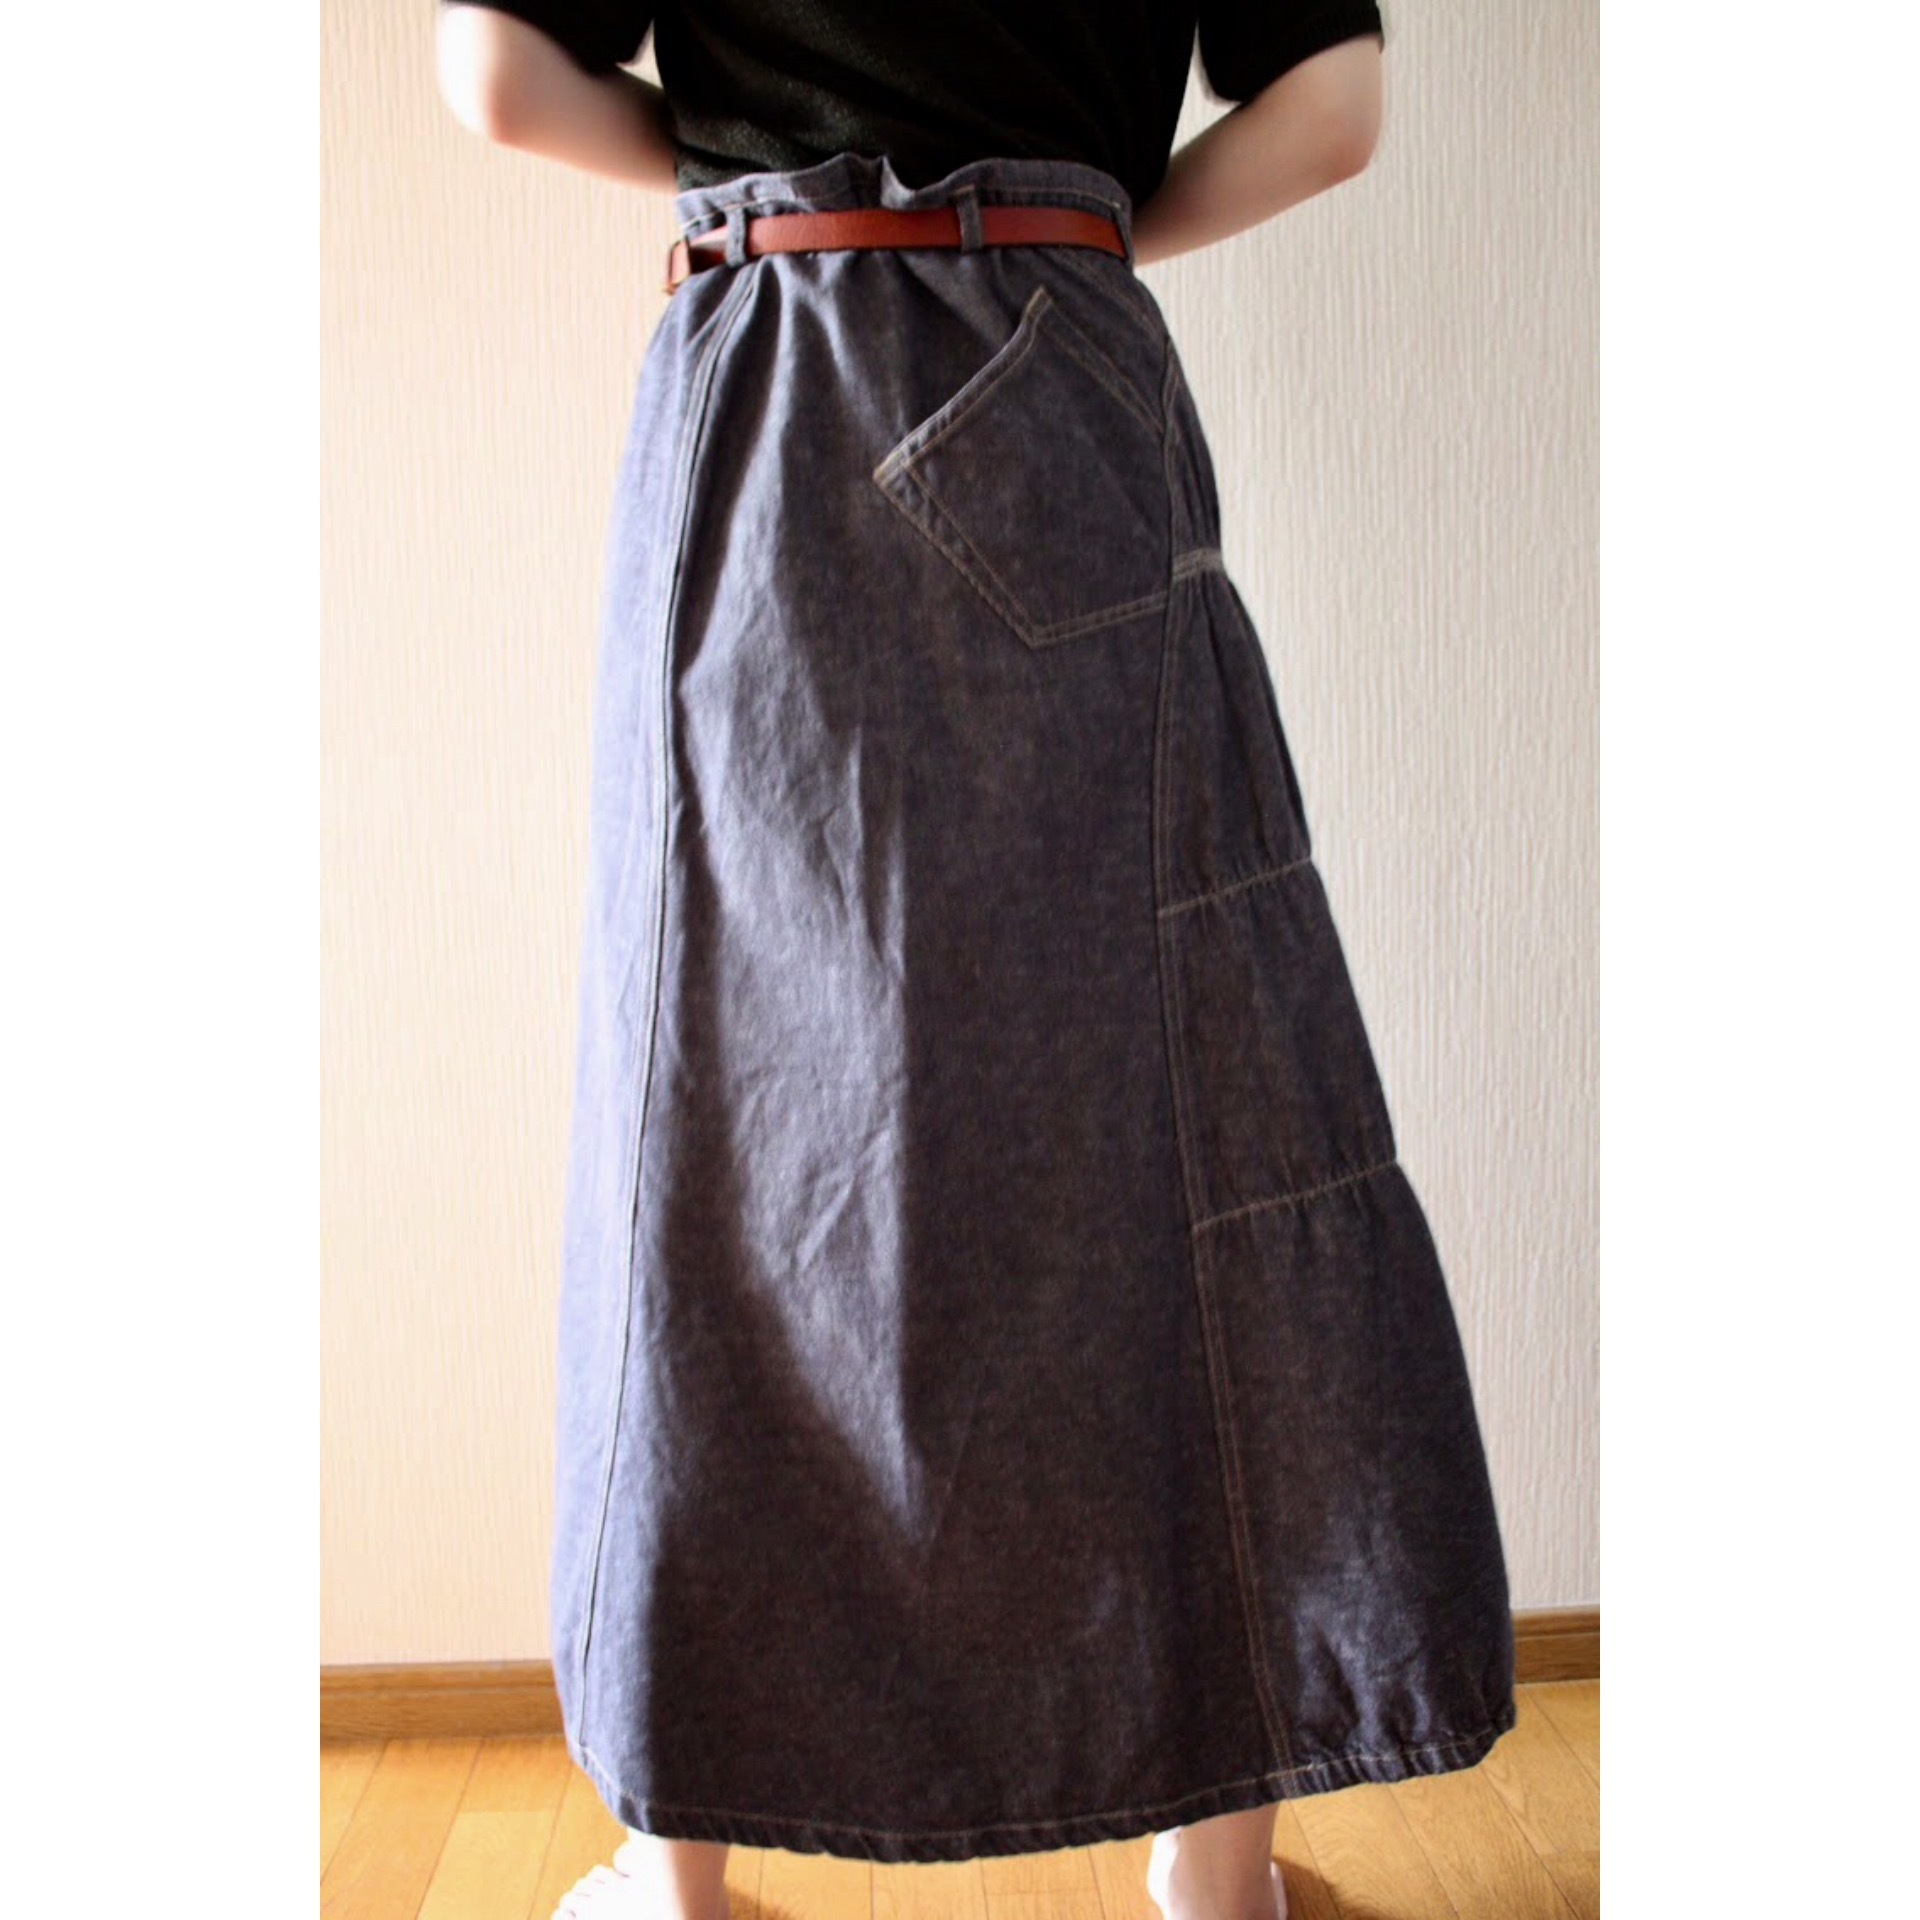 Vintage denim skirt by Marithé François Girbaud